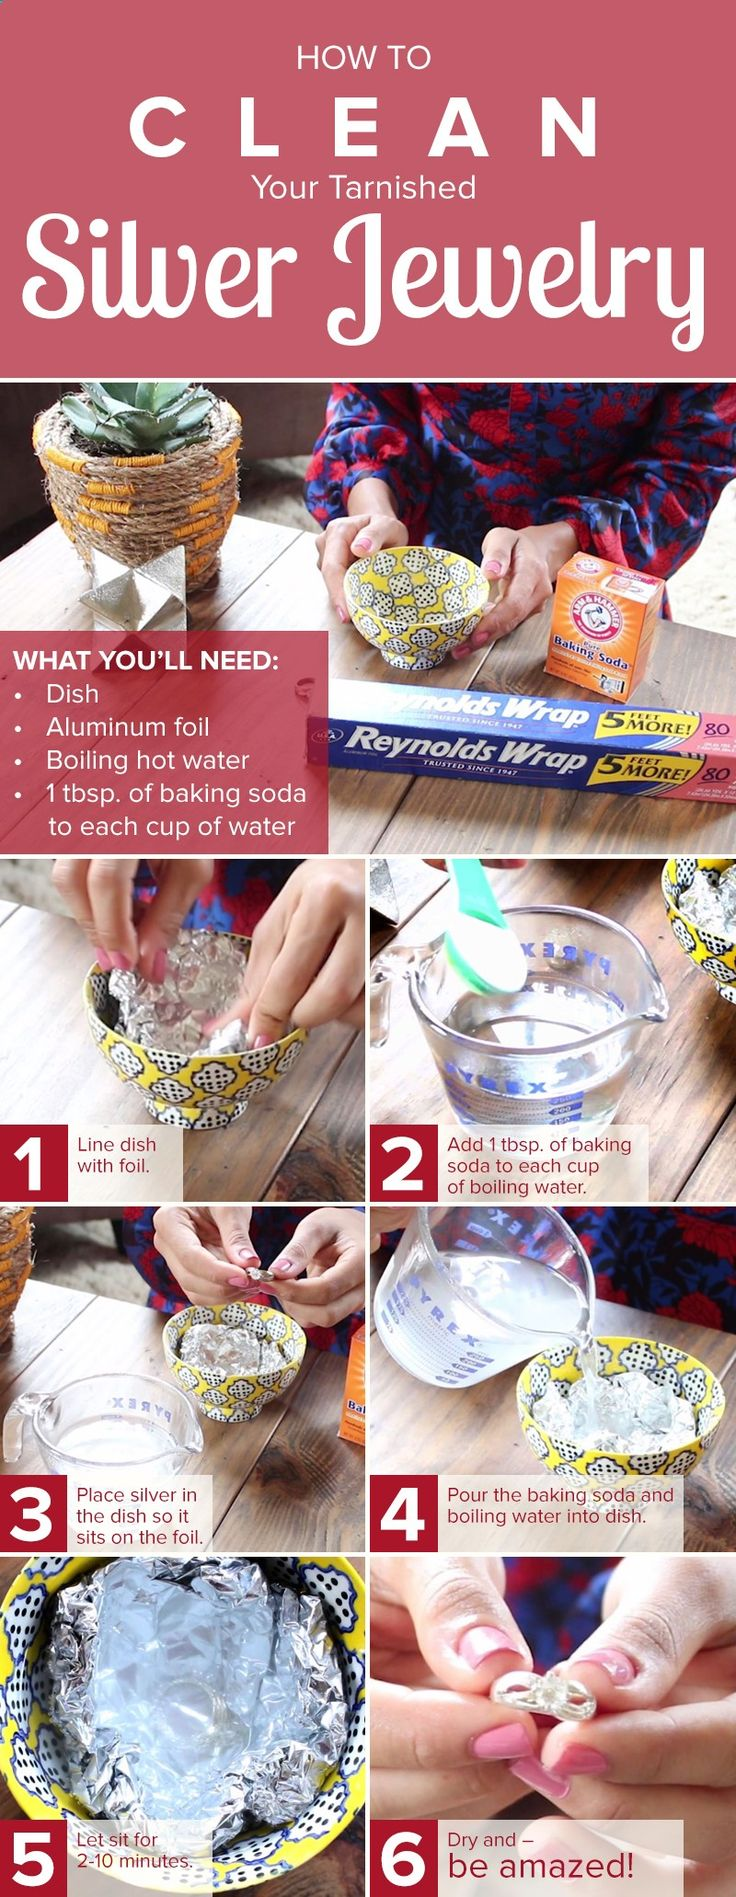 Make a homemade DIY jewelry cleaner to remove tarnish on your favorite silver necklaces, bracelets, earrings and rings. All you need are baking soda and water.http://www.crazyboxx.com/